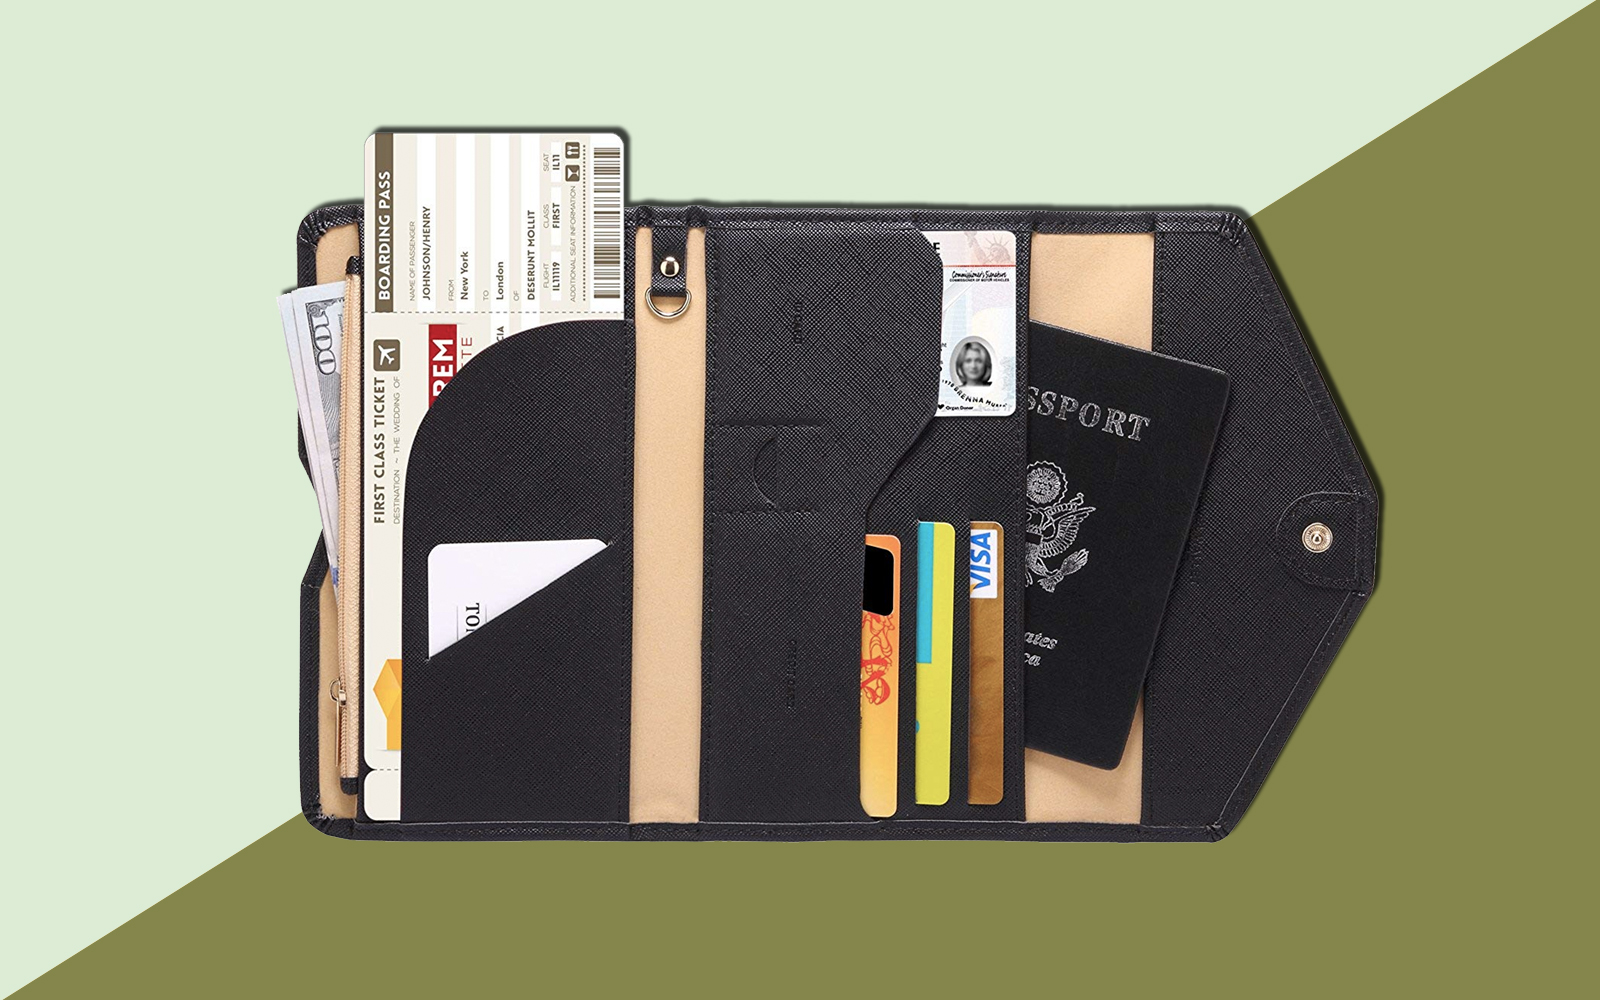 This $14 Passport Wallet Comes in 35 Colors and Has Over 2,600 Rave Reviews on Amazon